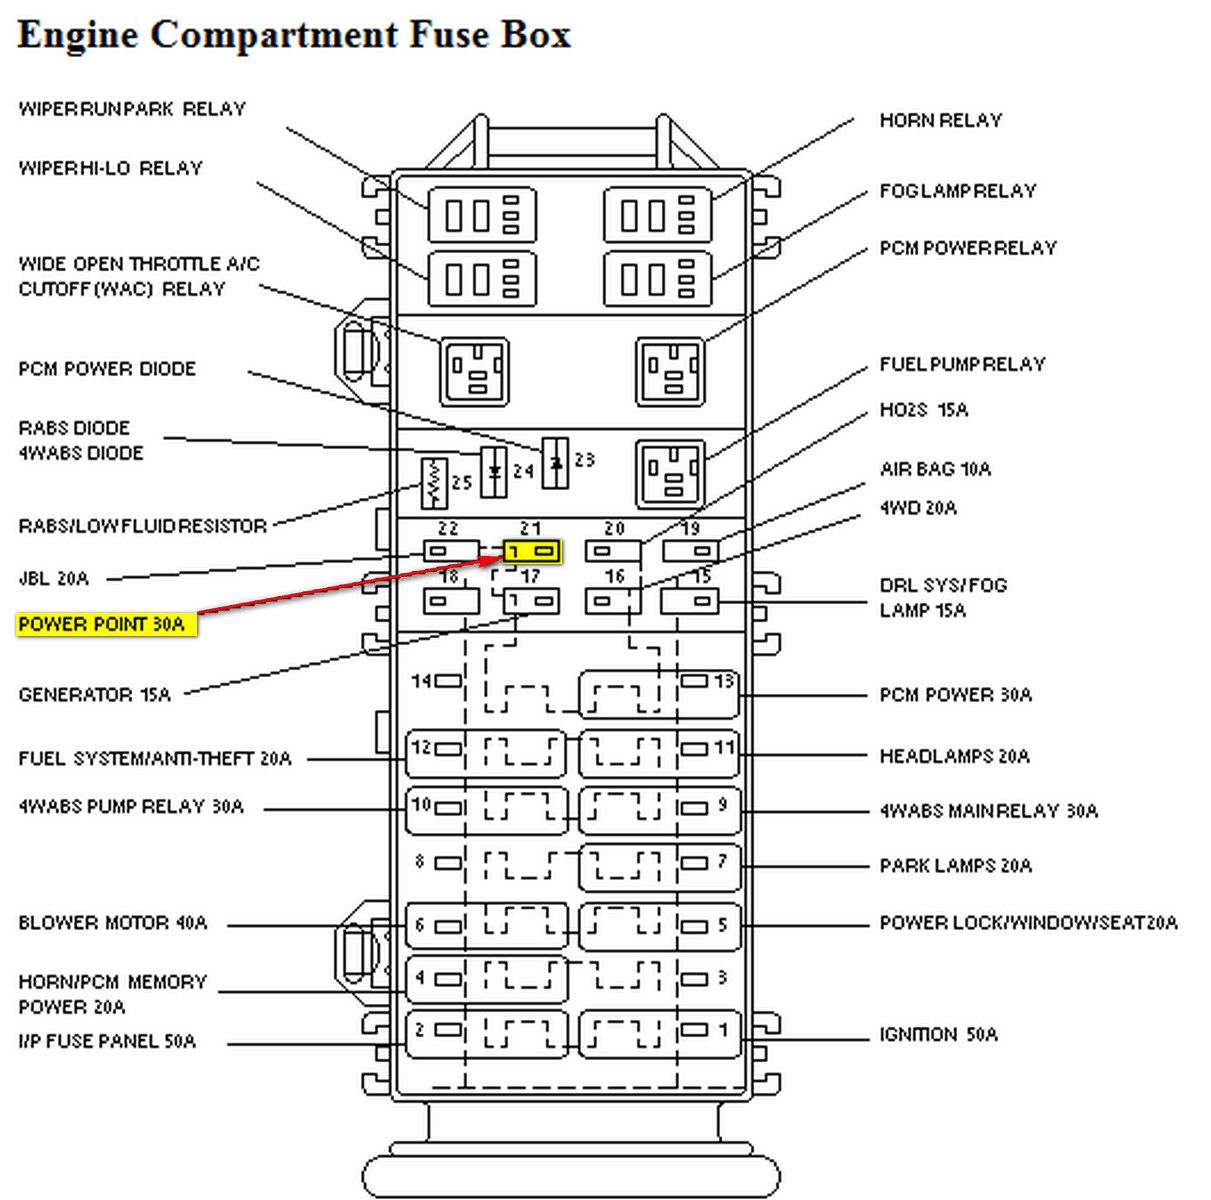 small resolution of 1996 ford ranger fuse box diagram wiring diagram sheet2002 ford ranger fuse diagram 1997 ford ranger